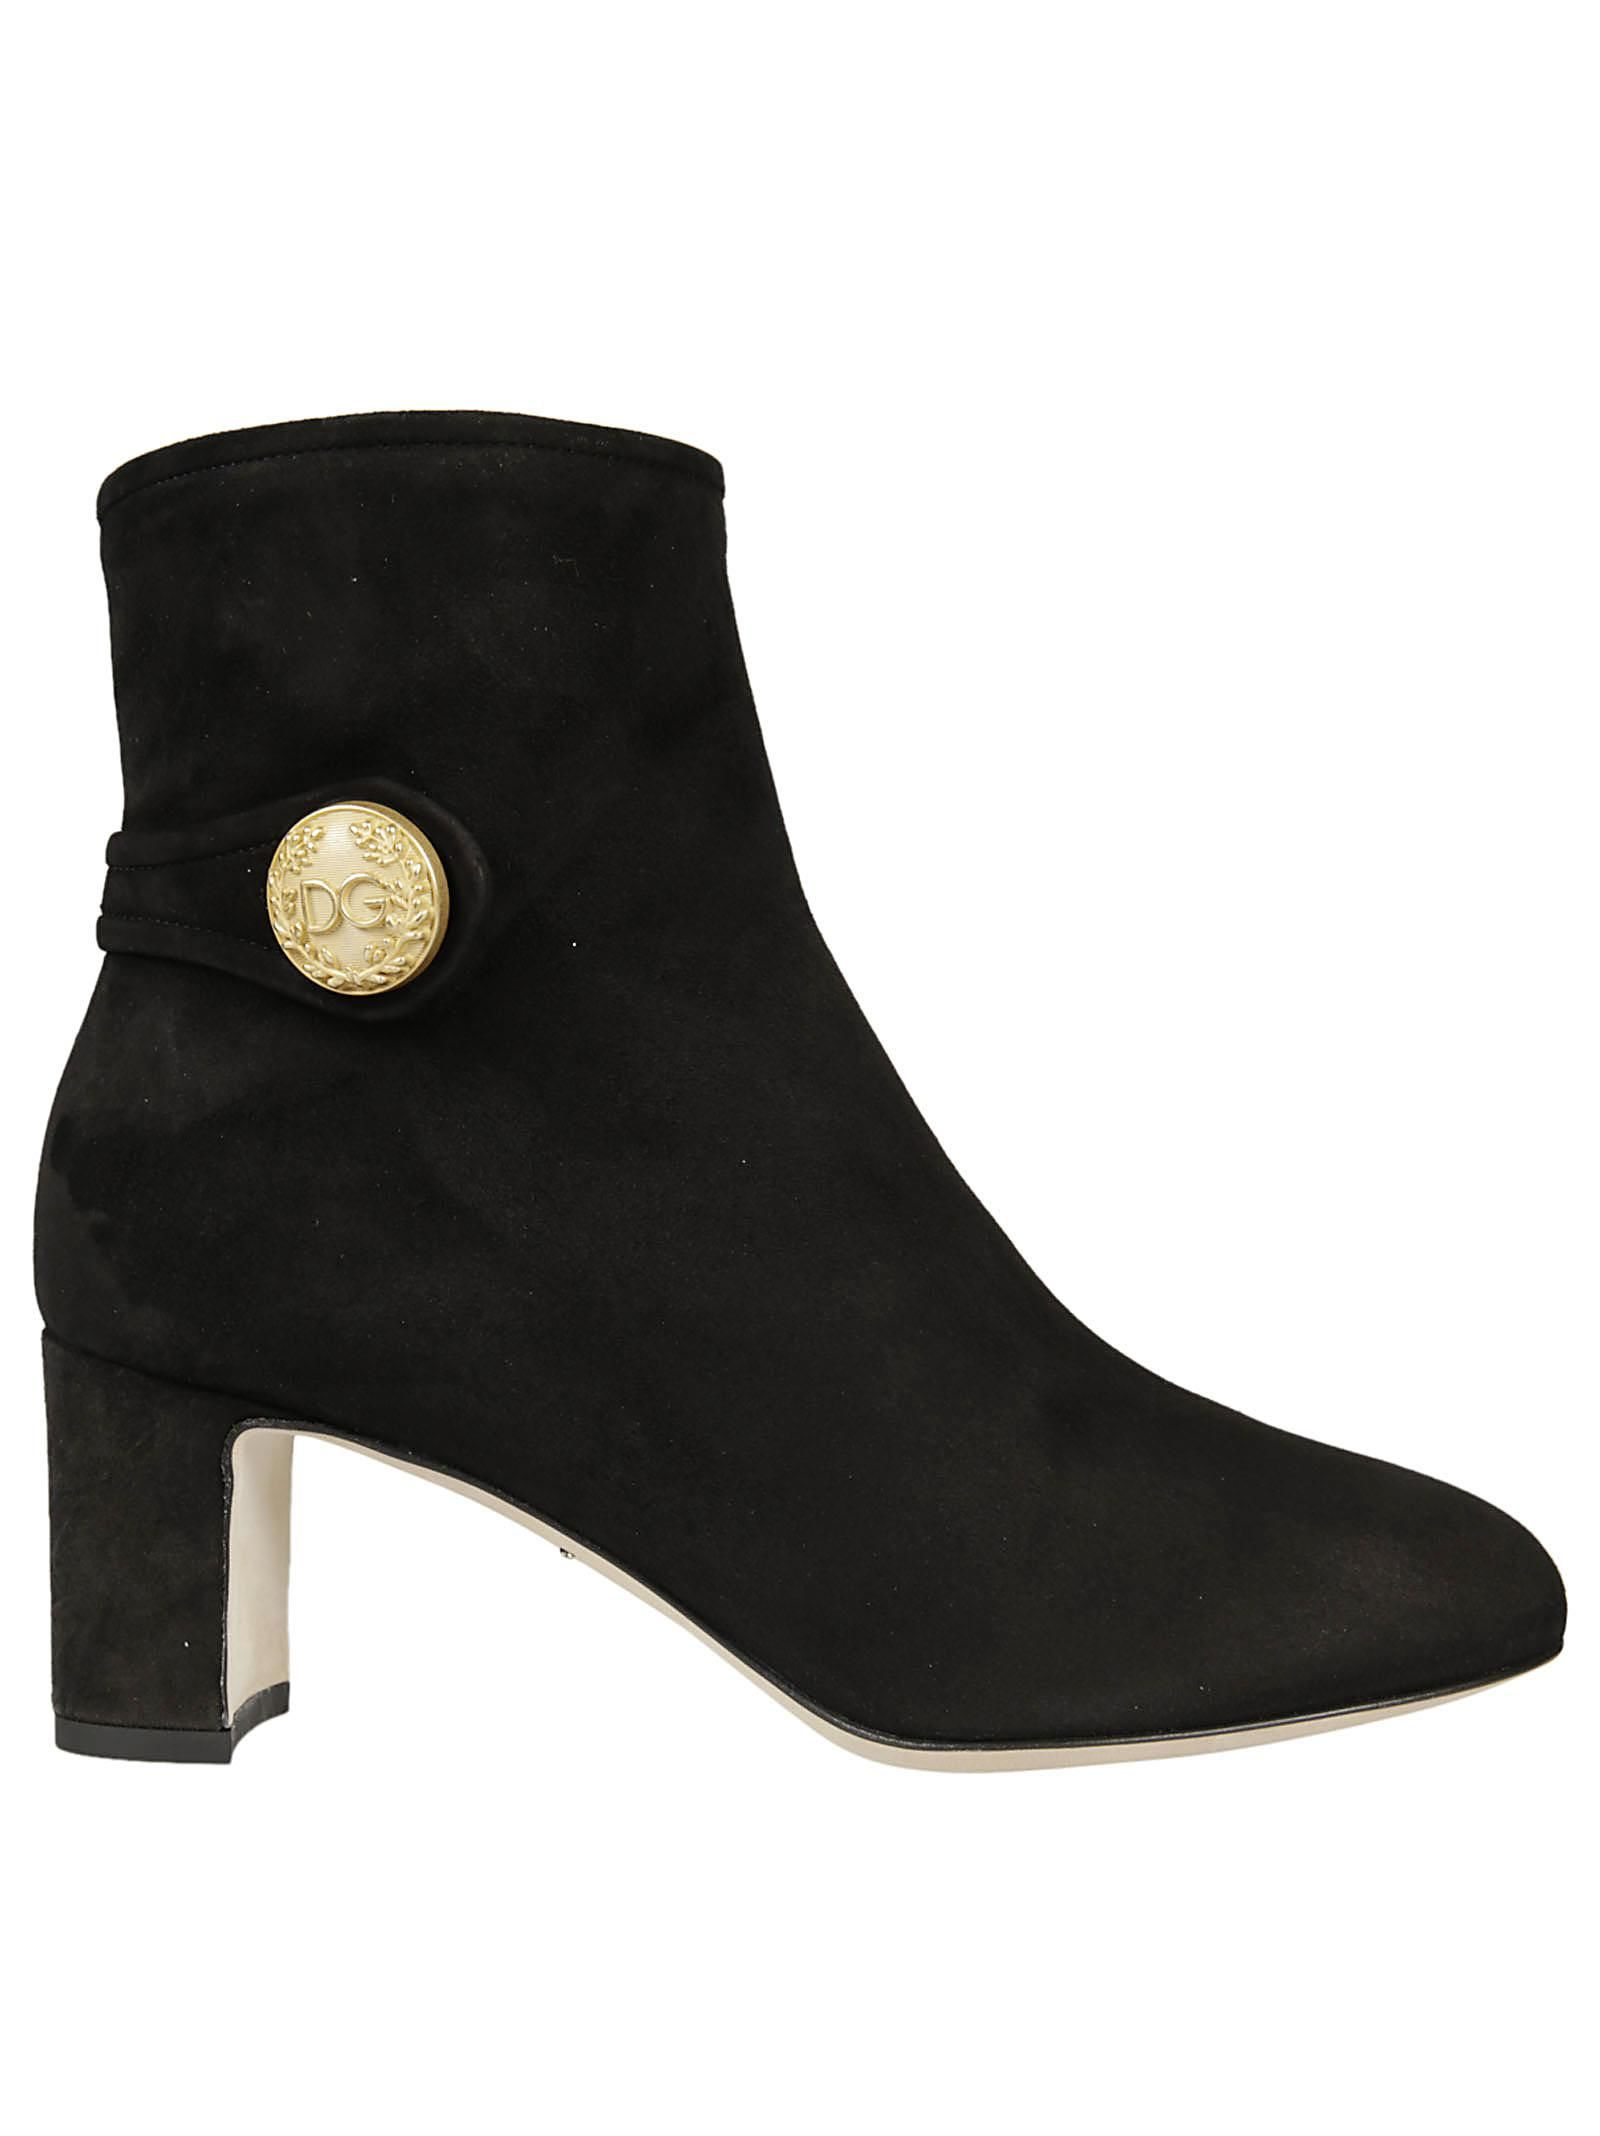 Dolce & Gabbana Button Logo Ankle Boots